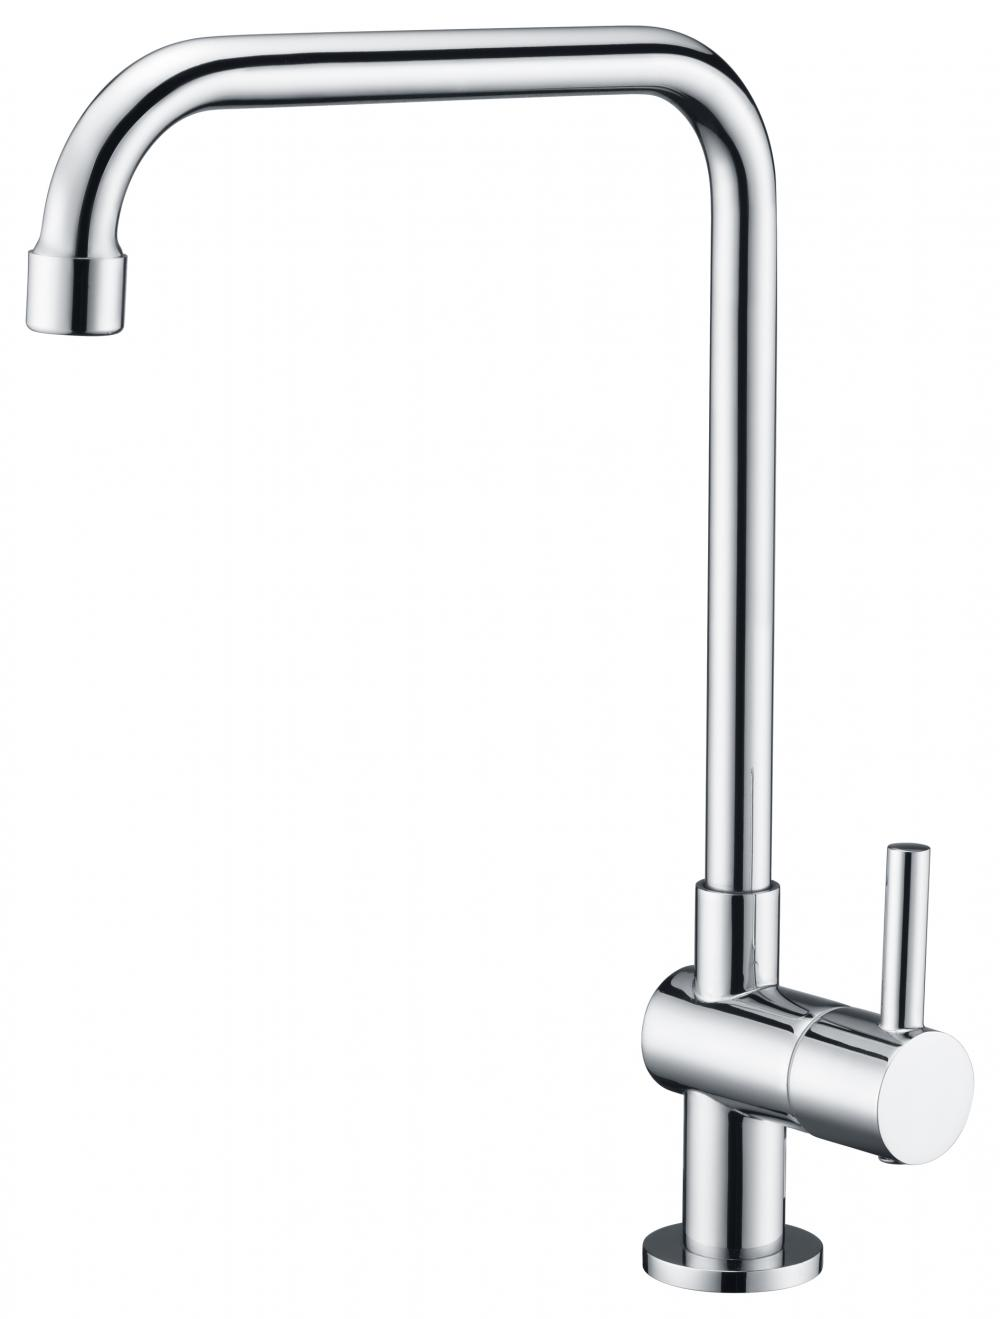 cold water sink faucet